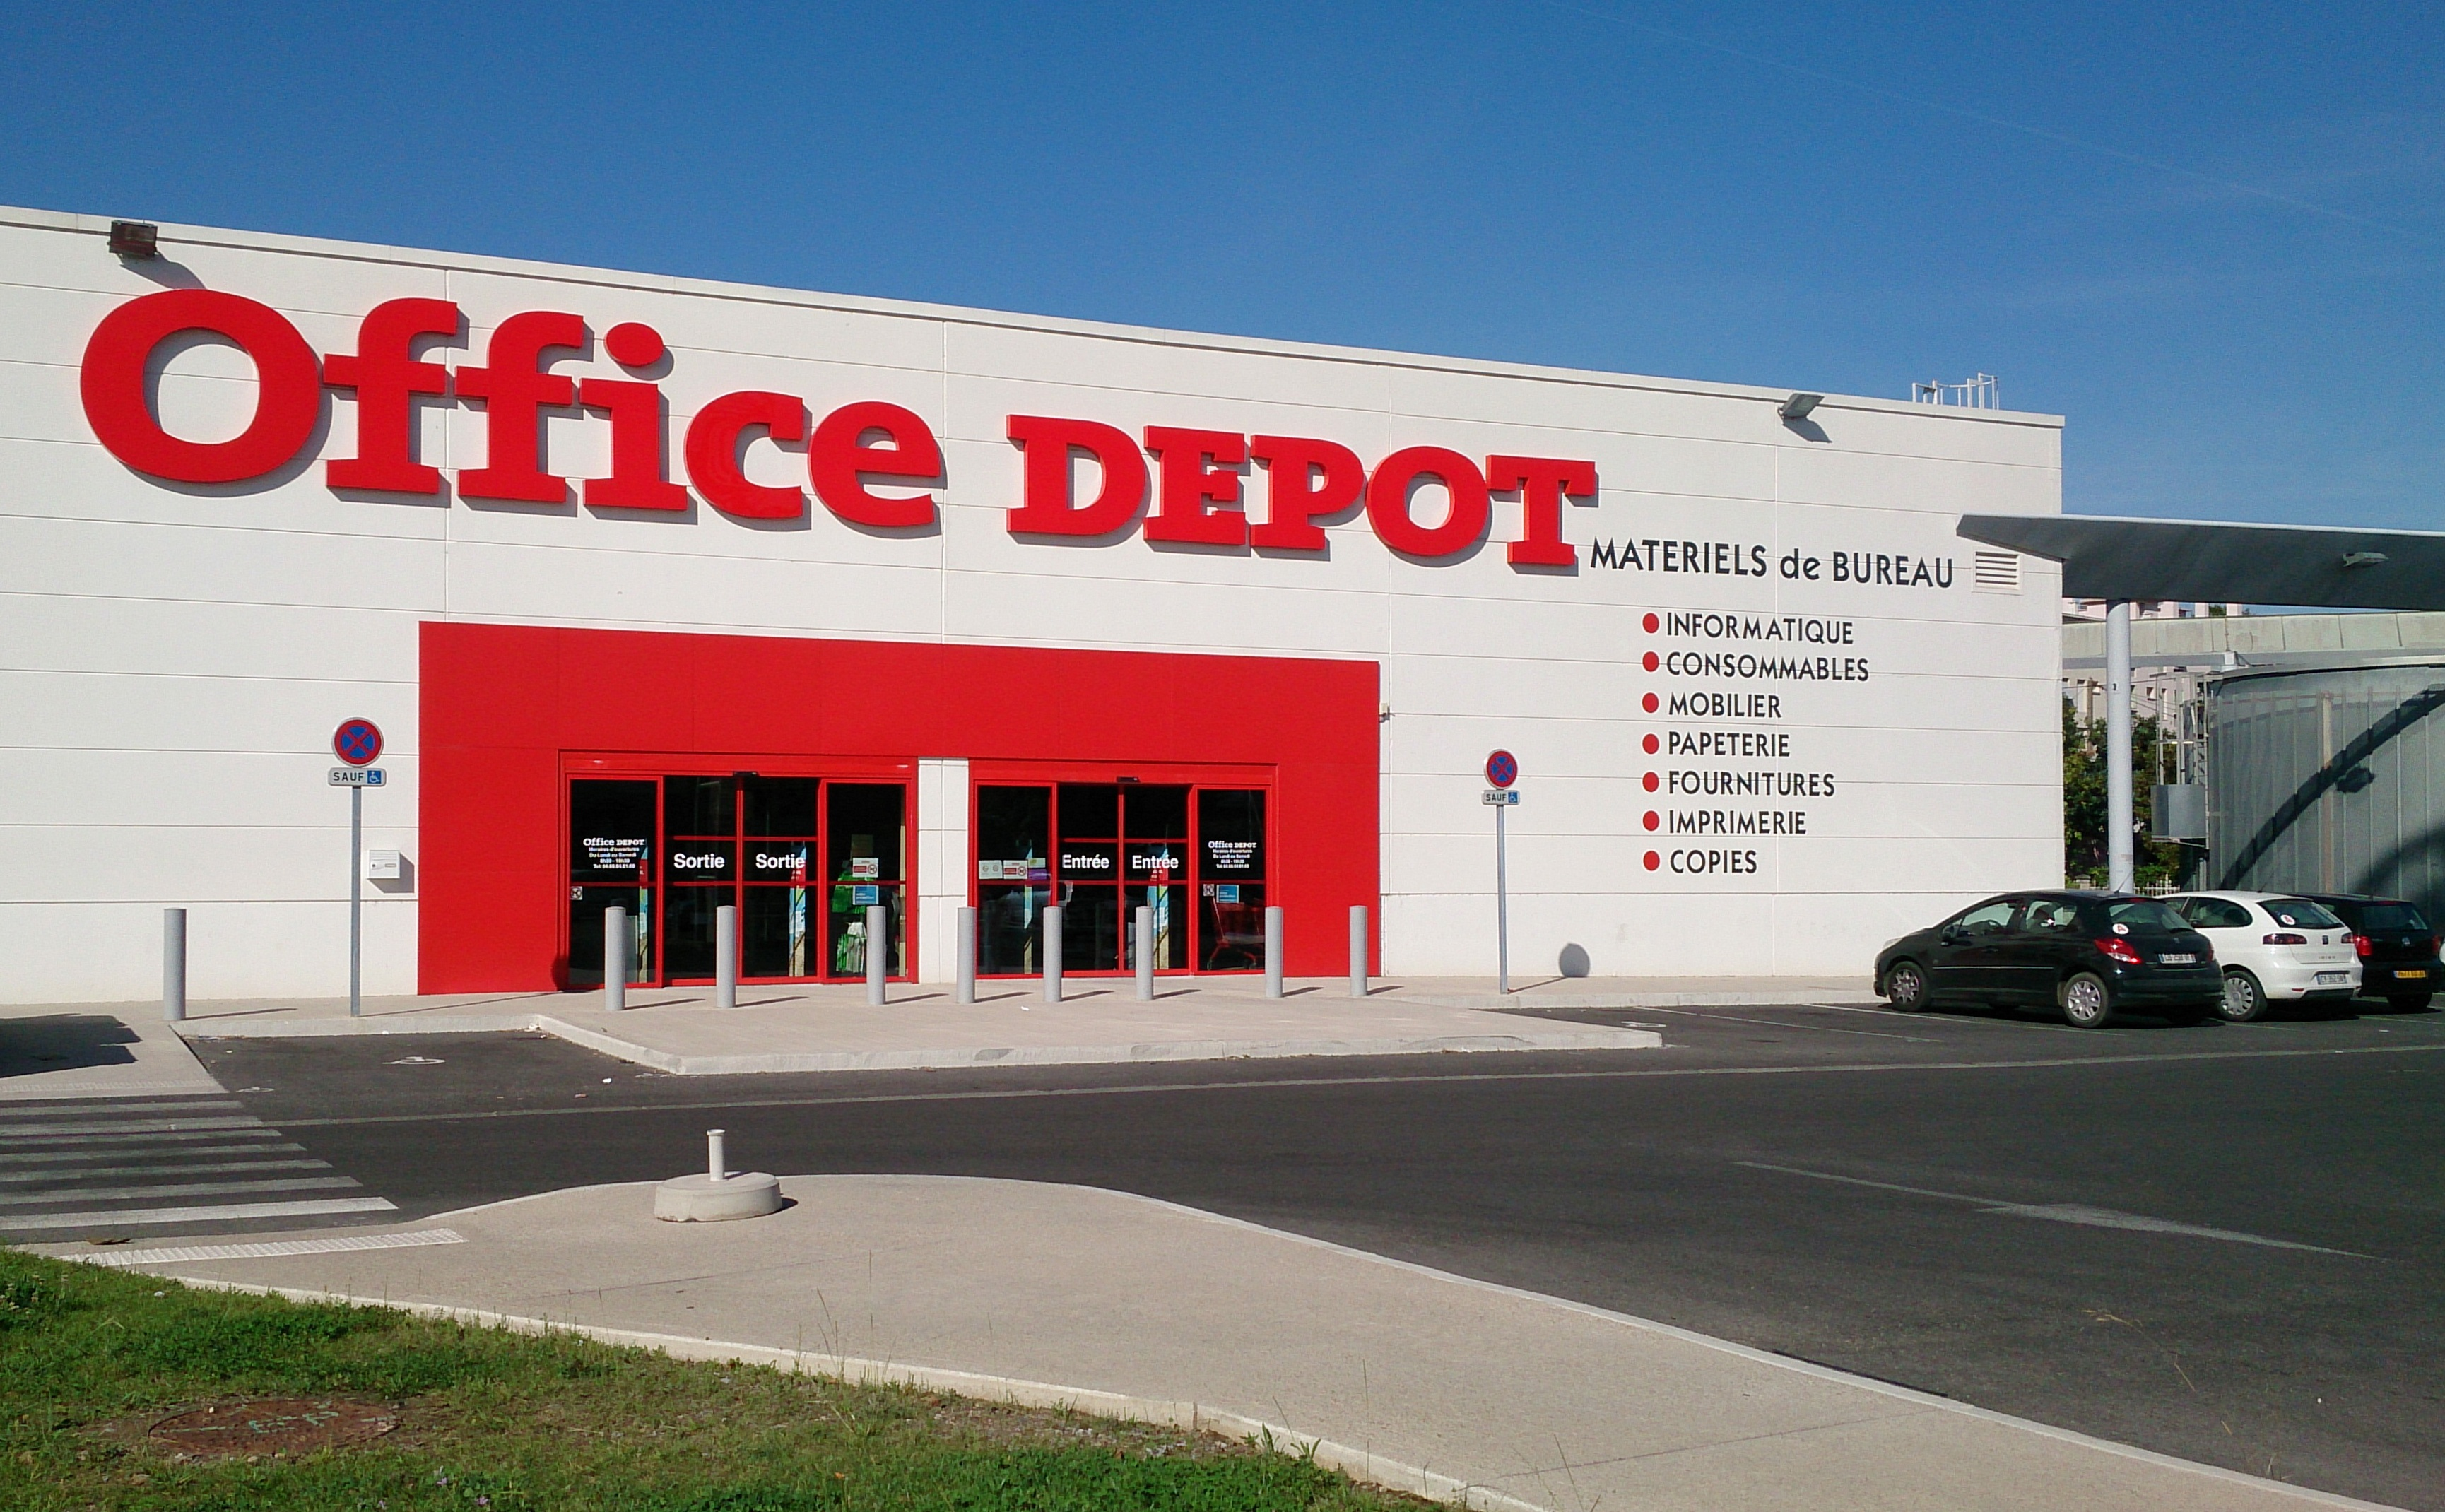 Magasin office depot nîmes fournitures mobiliers de bureau